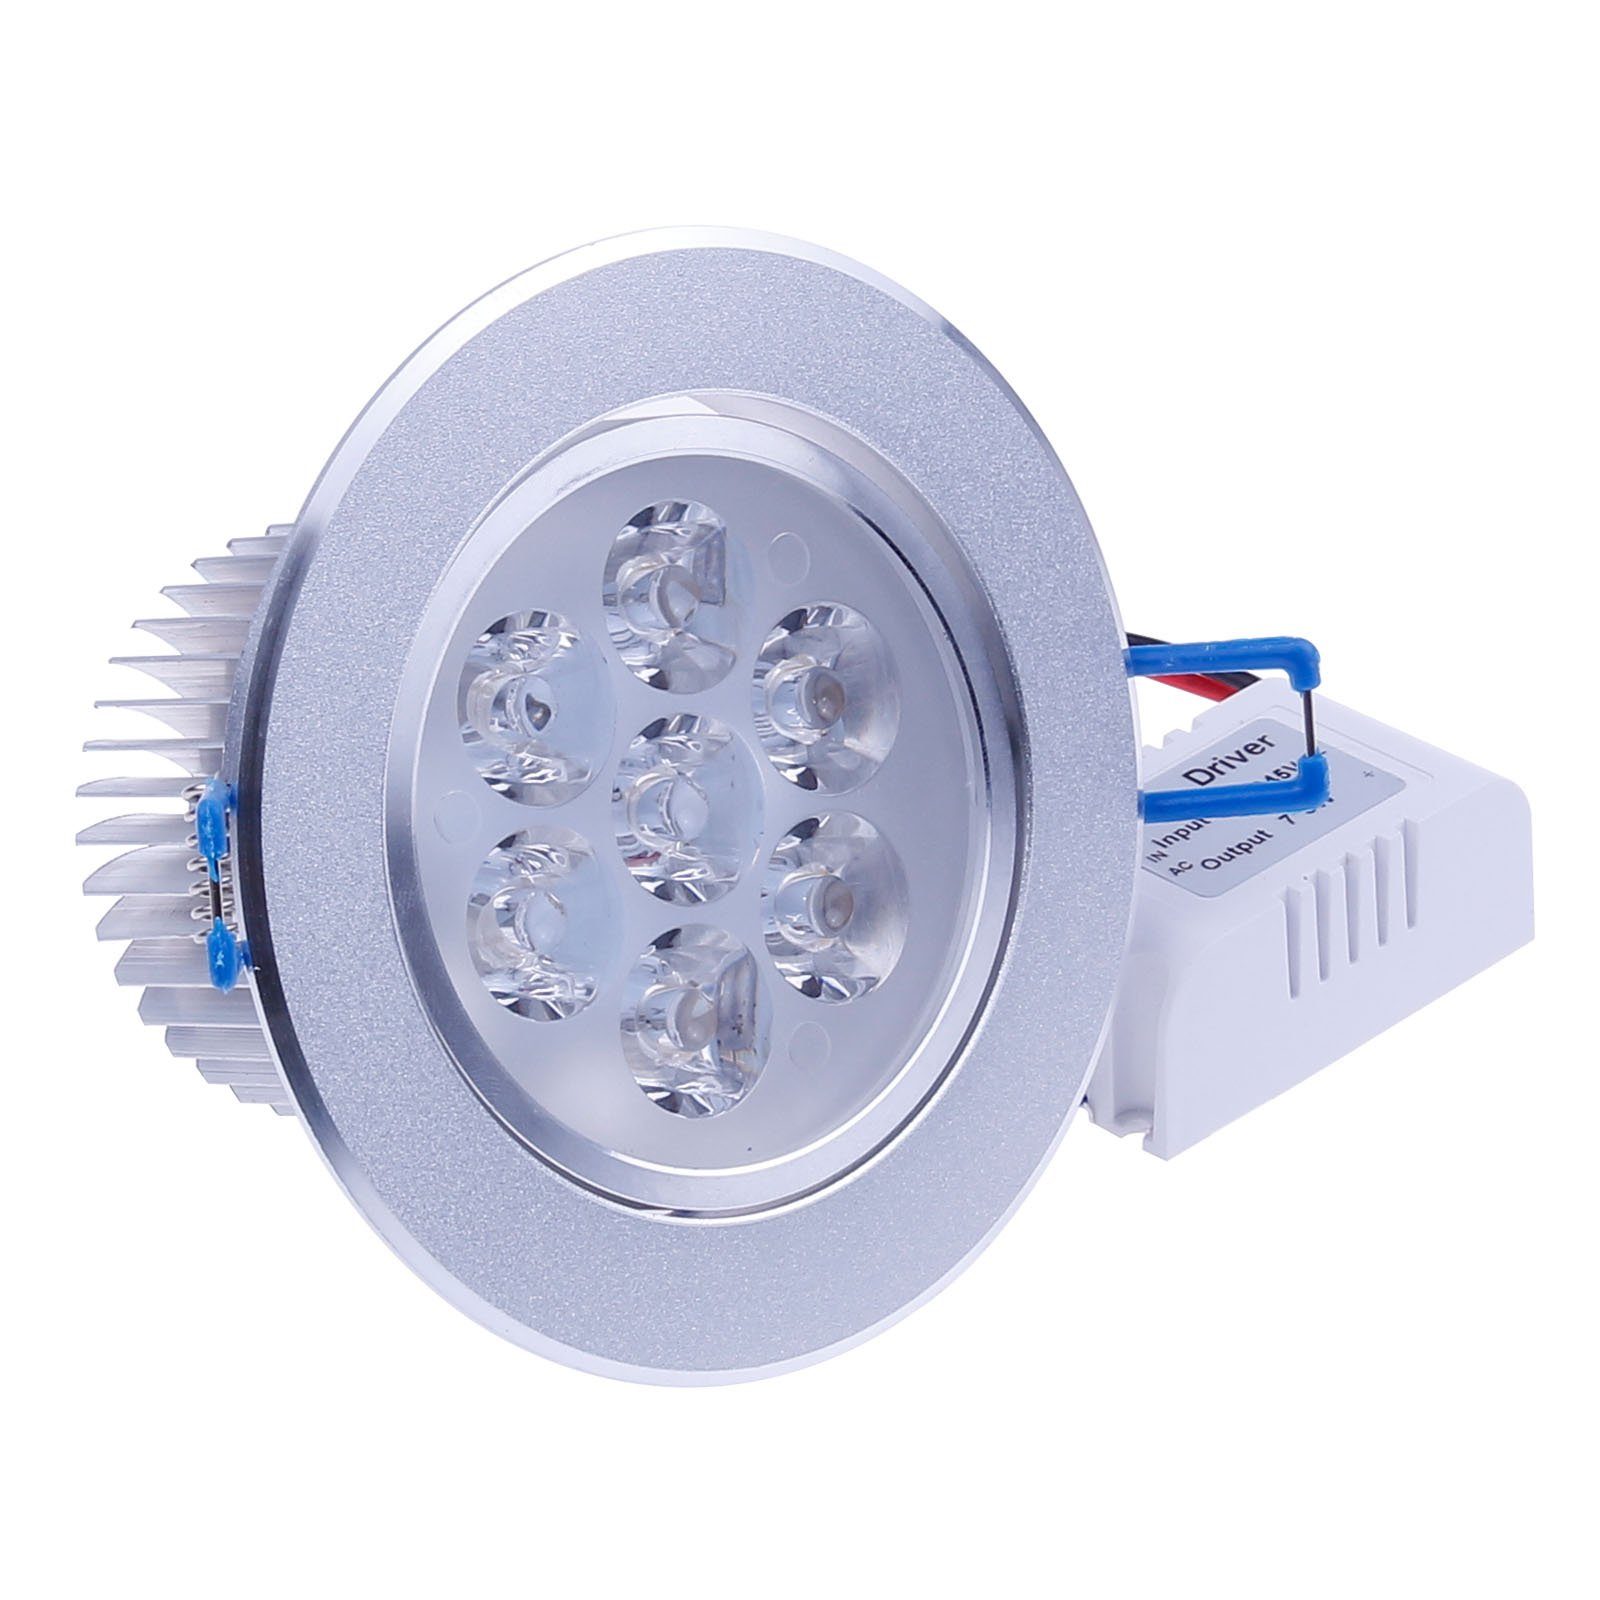 LemonBest Brand New 110V Dimmable 7W LED Ceiling Light Downlight Recessed Lighting, Superbright Cool White by LemonBest (Image #2)